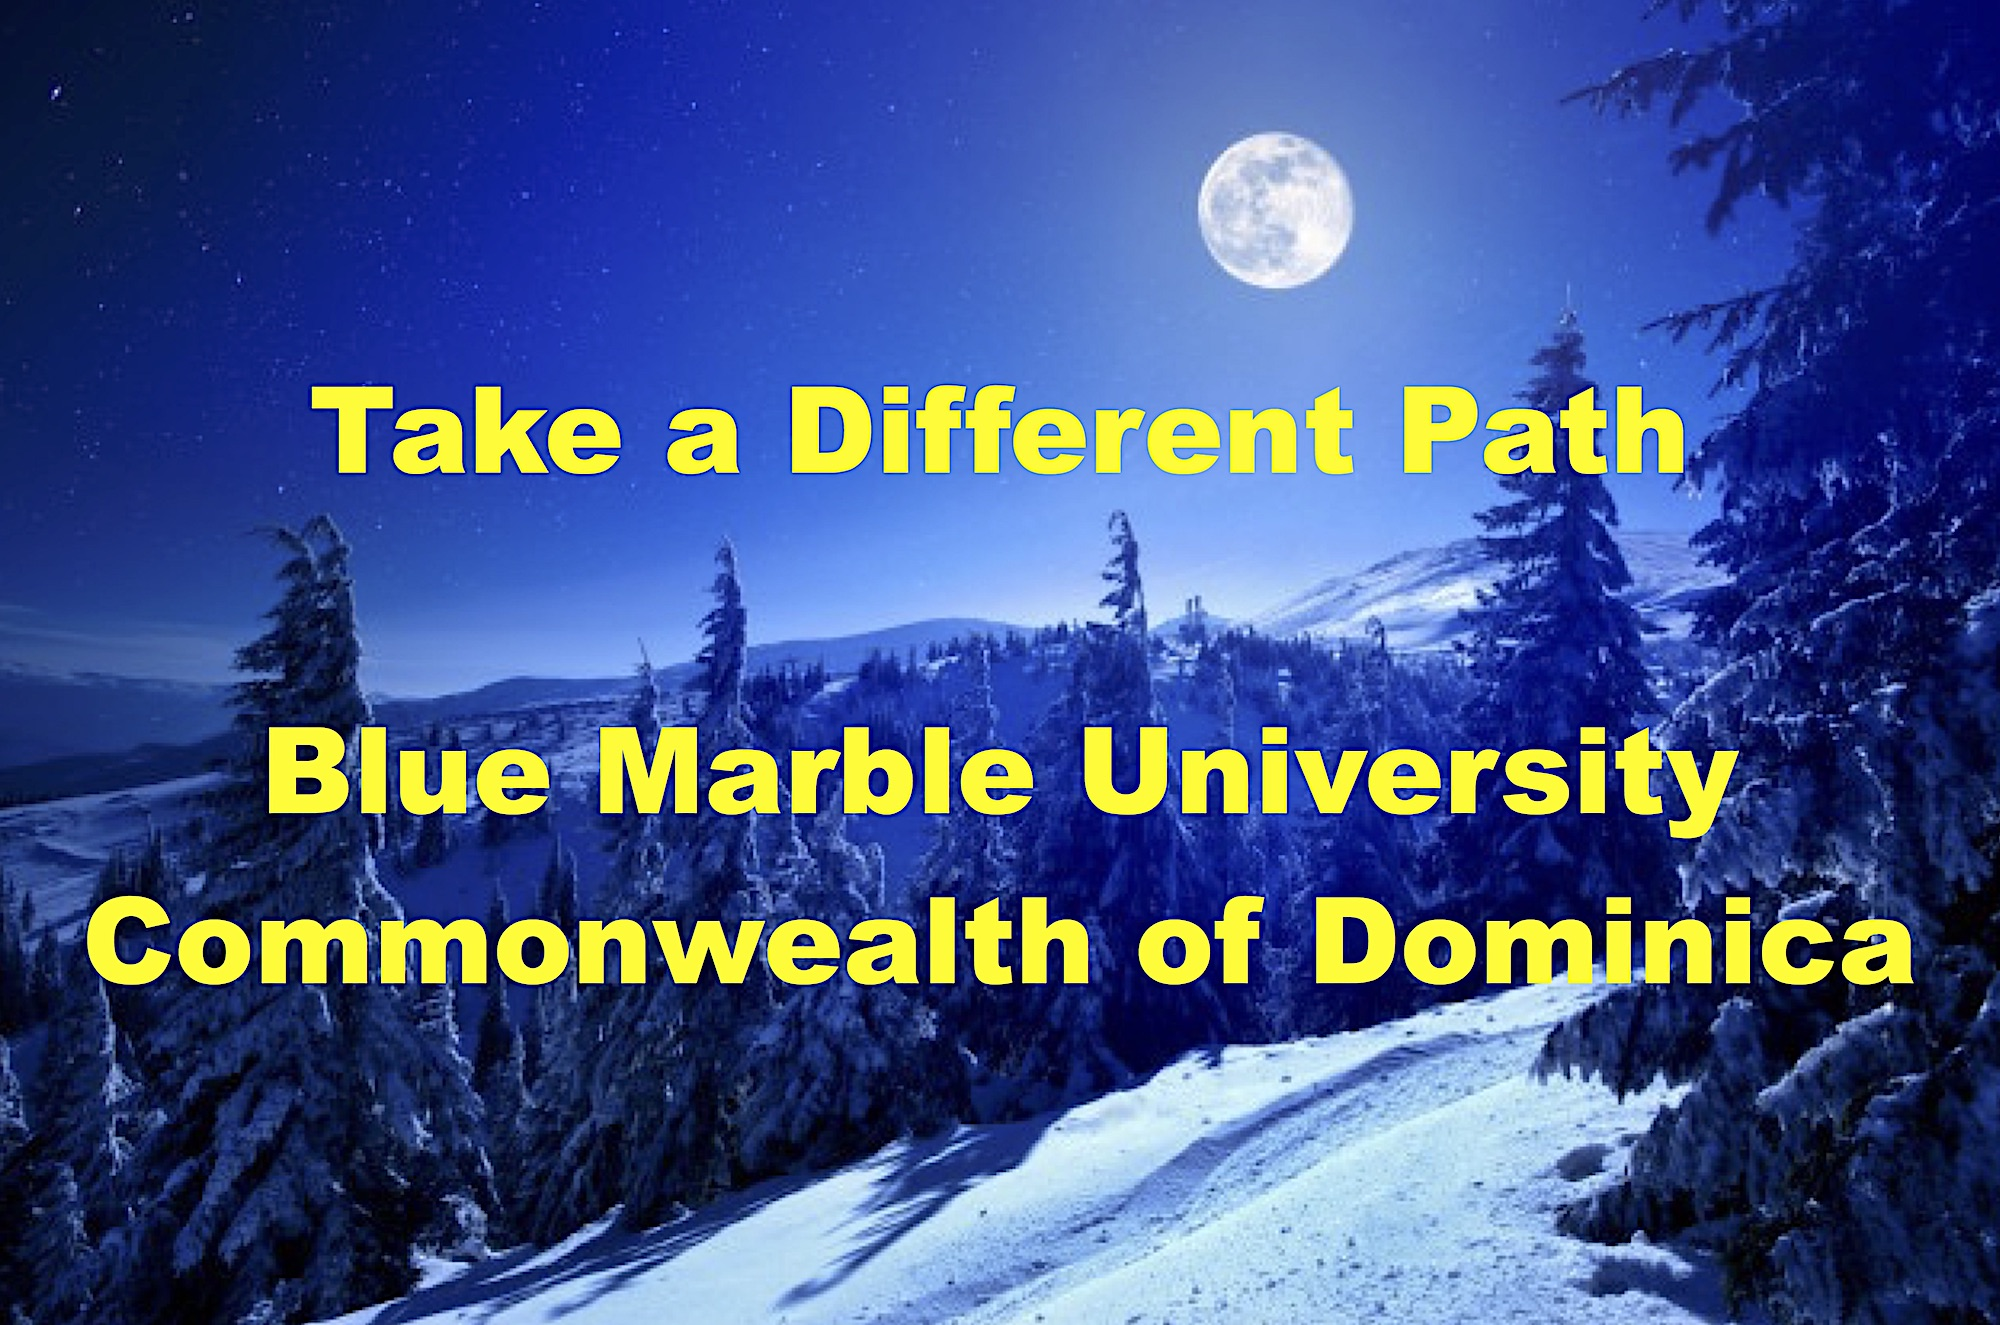 """Take a Different Path. Blue Marble University PhD degrees, as most foreign education degrees, are accepted in the USA as being equivalent to a regionally accredited USA college or university, as determined by a professional foreign credentials evaluation service. Blue Marble University degrees are """"equivalent"""" because they are comprised of a minimum 72 trimester credit hours, the minimum required in the USA. If you were to attend a university overseas, it would not be """"accredited"""". Yet many people with overseas education use that education in the USA. They have their degrees approved as equivalent to a regionally accredited USA college or university by one of the many foreign education credential evaluation services. Because all of our doctoral programs require a minimum of 72 trimester credits of study, they are equivalent to the minimum requirements for a regionally accredited USA college or university doctoral degree. Therefore, graduates of Blue Marble University doctoral programs are qualified for most state and federal jobs based on our degree being equivalent to a USA doctoral degree. Graduates can if needed and for a nominal fee usually receive a certificate from various foreign credential evaluators to the effect that the doctoral degree issued by Blue Marble University is equivalent to a doctoral degree issued by a regionally accredited USA college or university."""